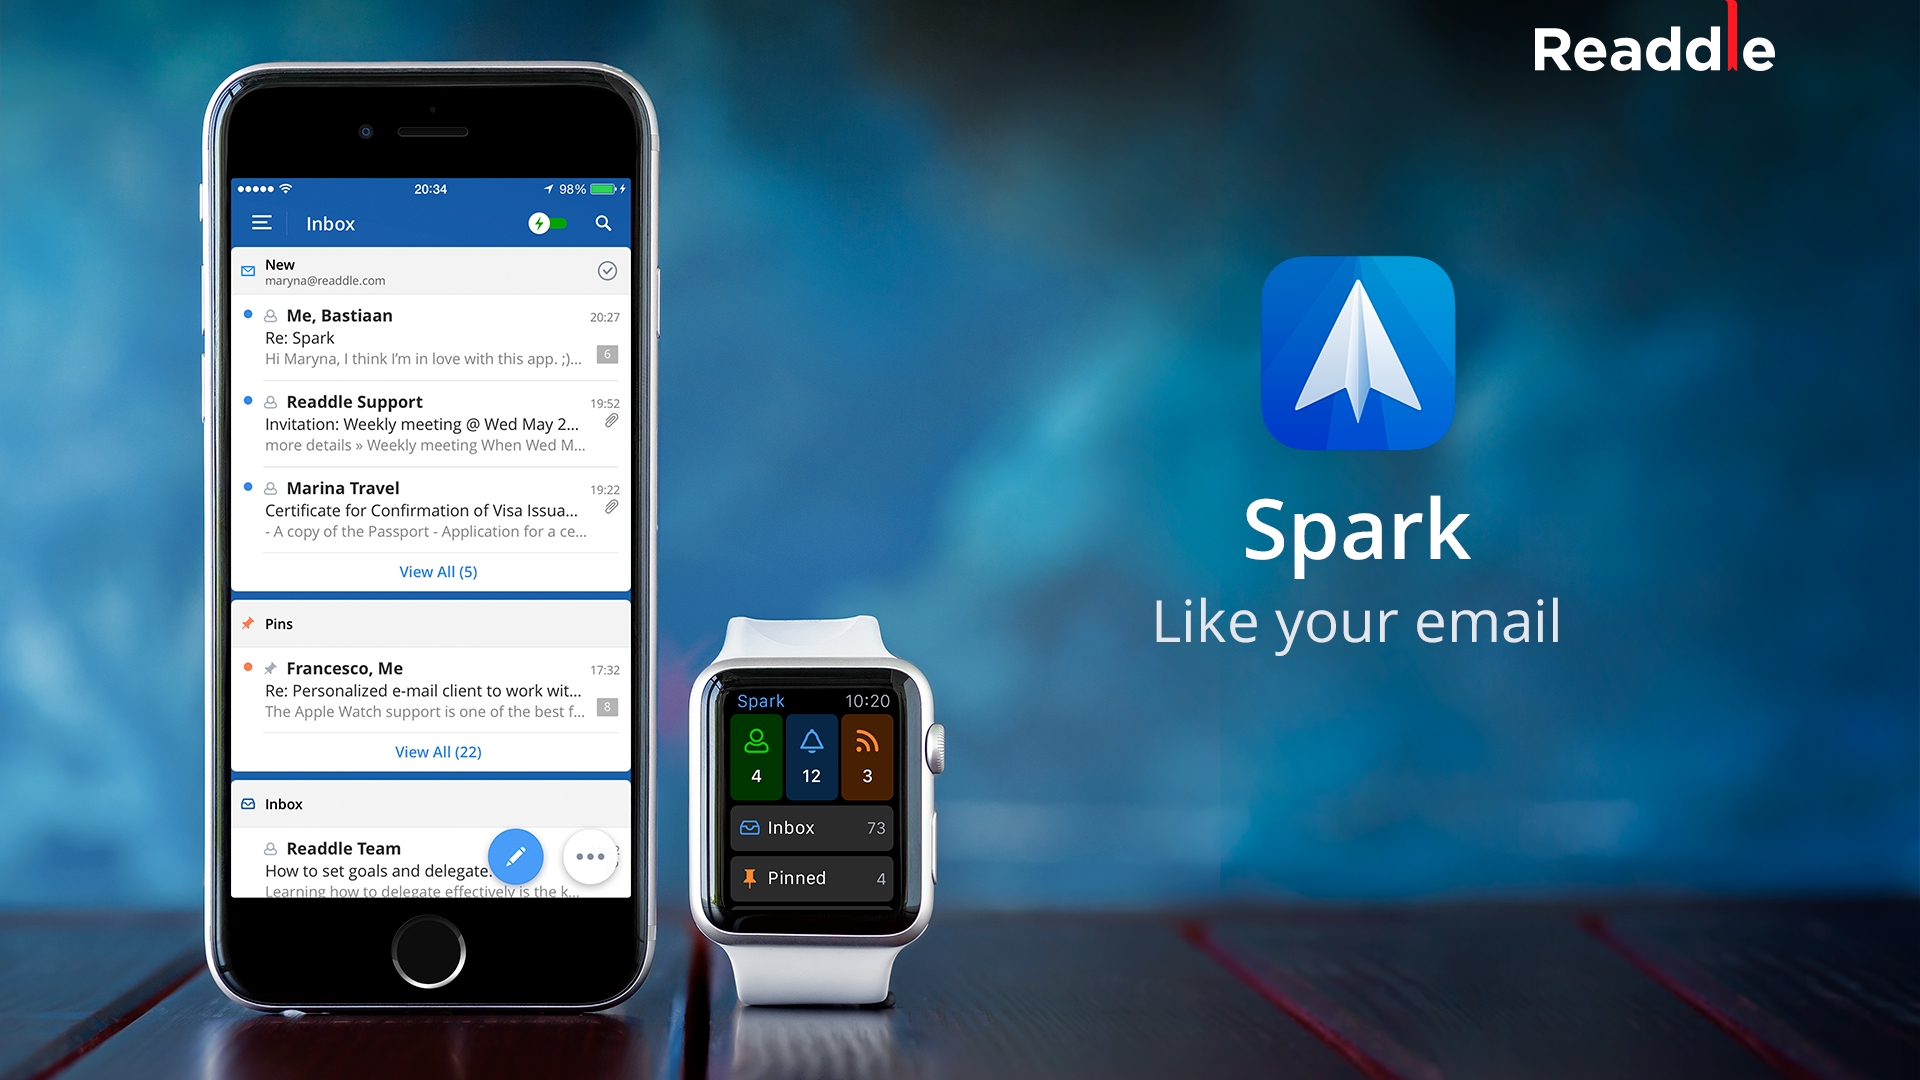 Spark by Readdle 1.0 for iOS teaser 001